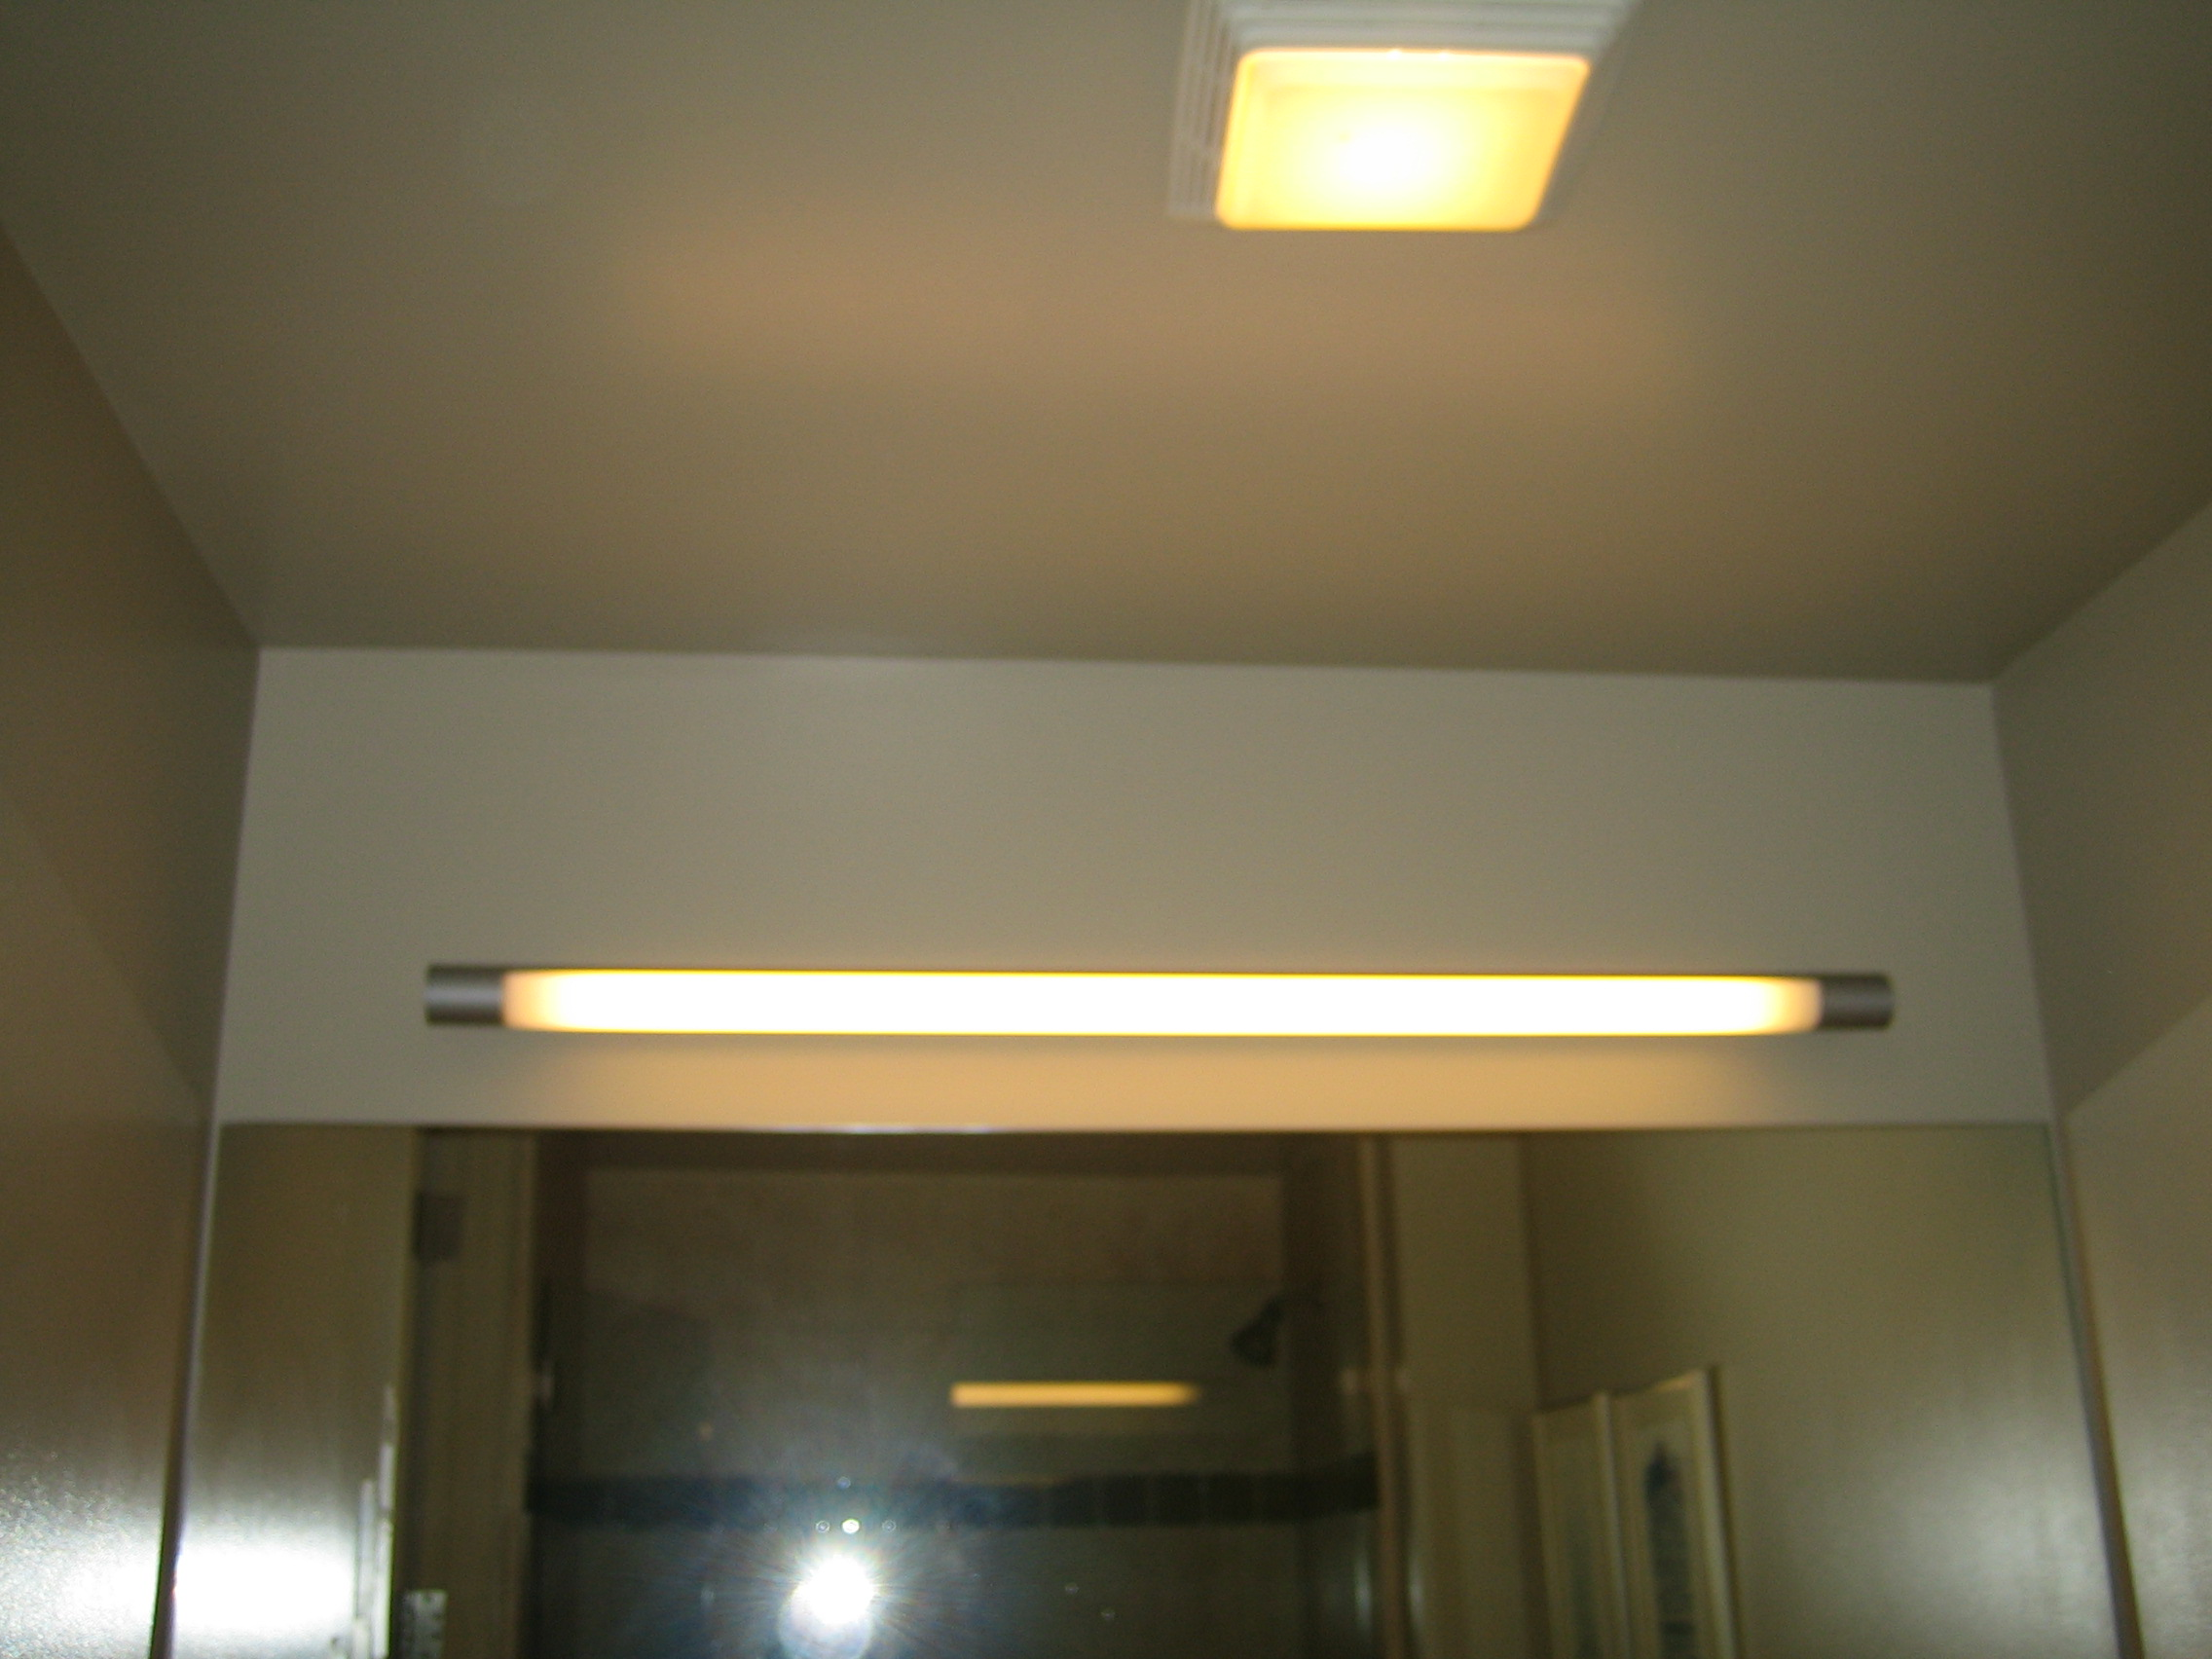 Vanity Light Bar Menards : Bathroom Lighting Pictures